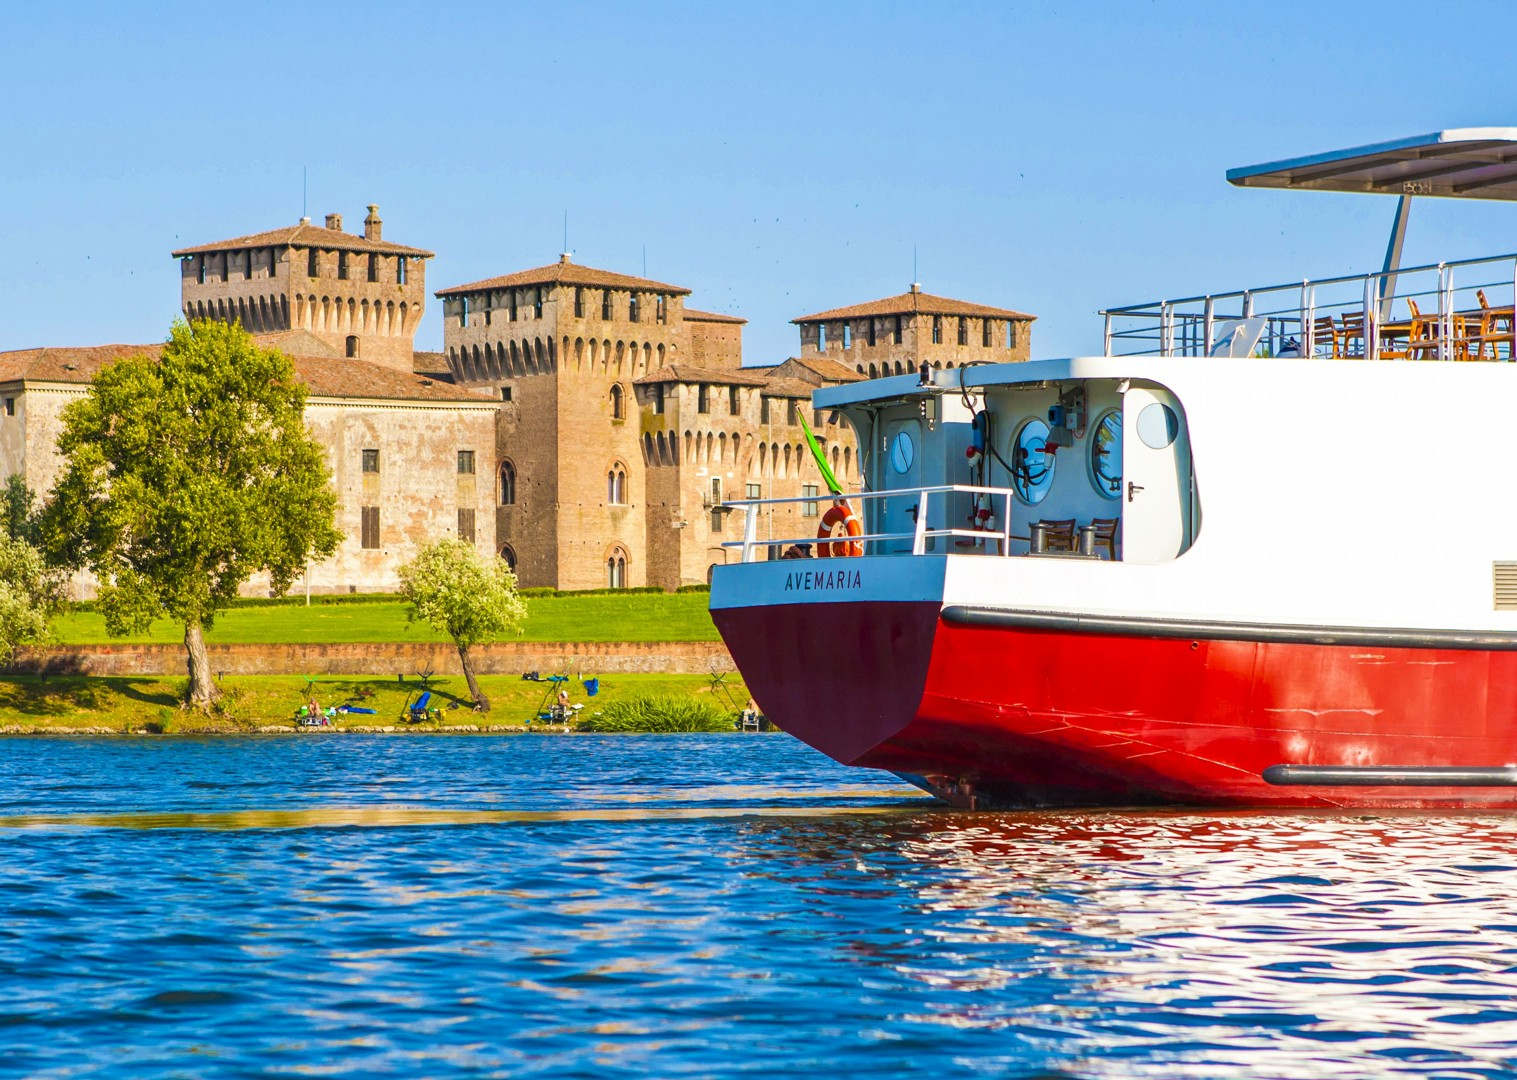 explore-mantova-ave-maria-boat-and-bike-cruise-skedaddle-fun-culture.jpg - Italy - Venetian Waterways (Venice to Mantova) - Bike and Barge Holiday - Leisure Cycling